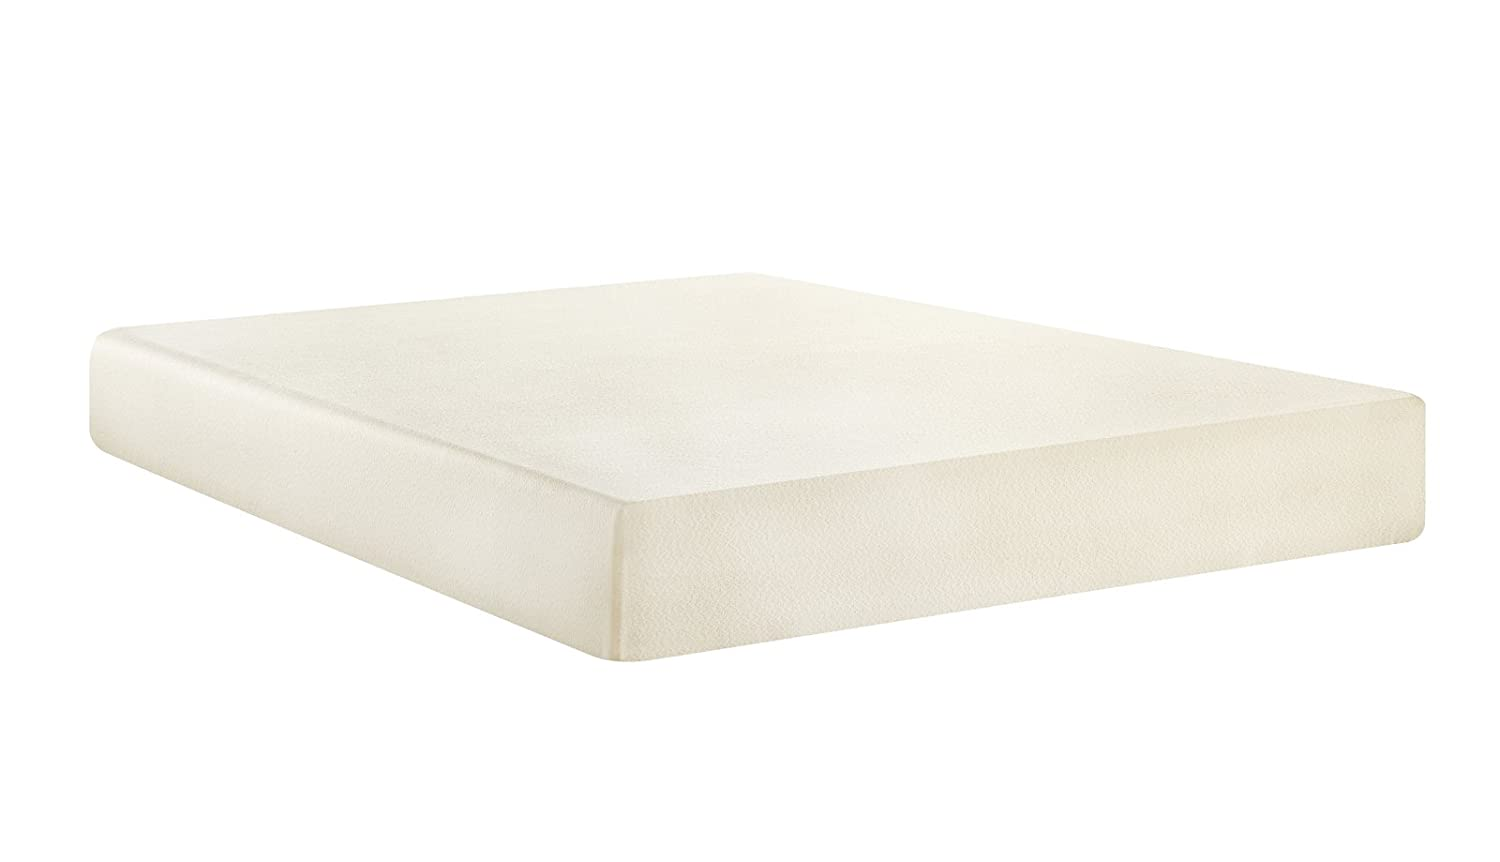 Signature Sleep 8 Inch Memory Foam Mattress Twin New Free Shipping Ebay